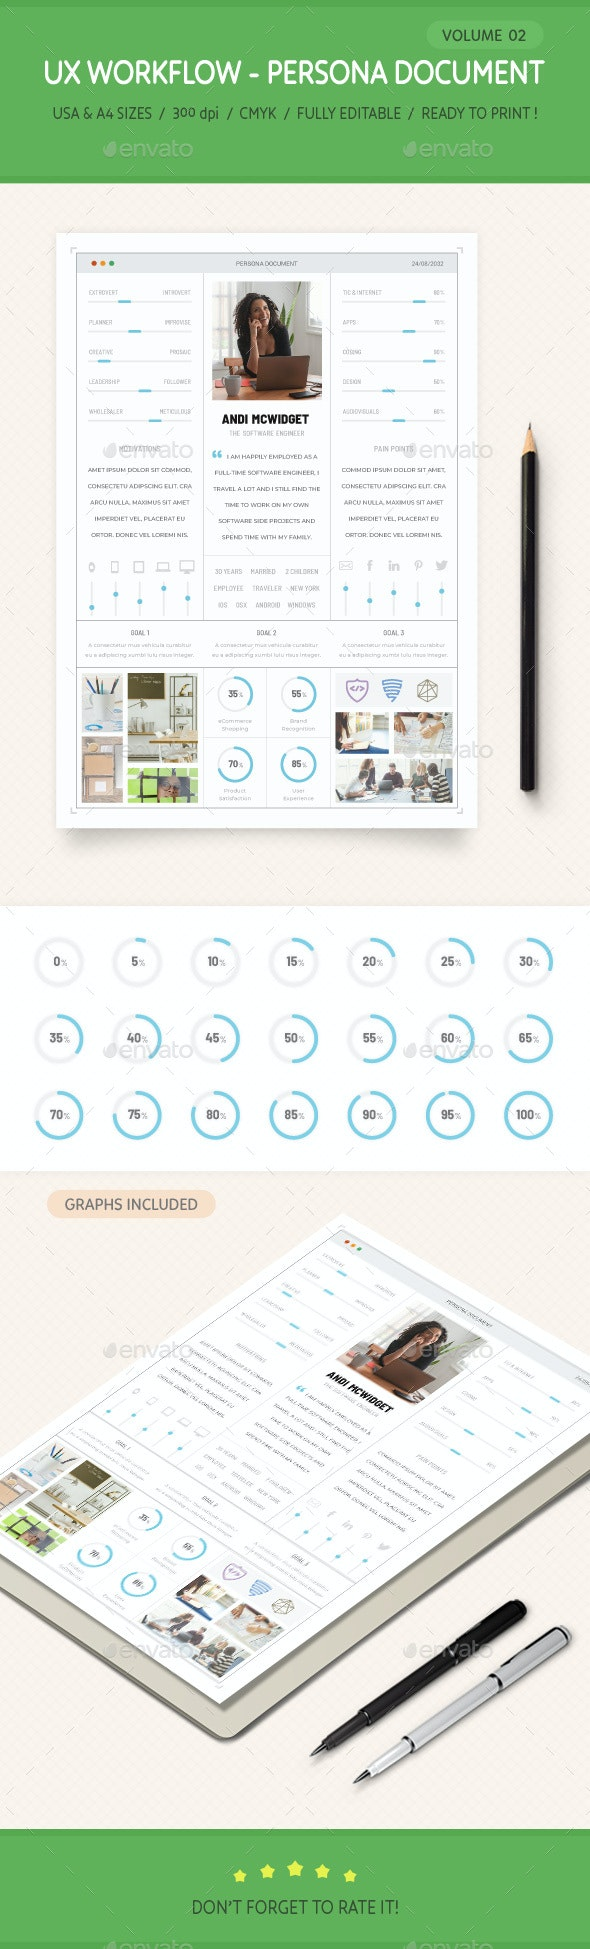 UX Workflow - Persona Document - Volume 02 - Stationery Print Templates